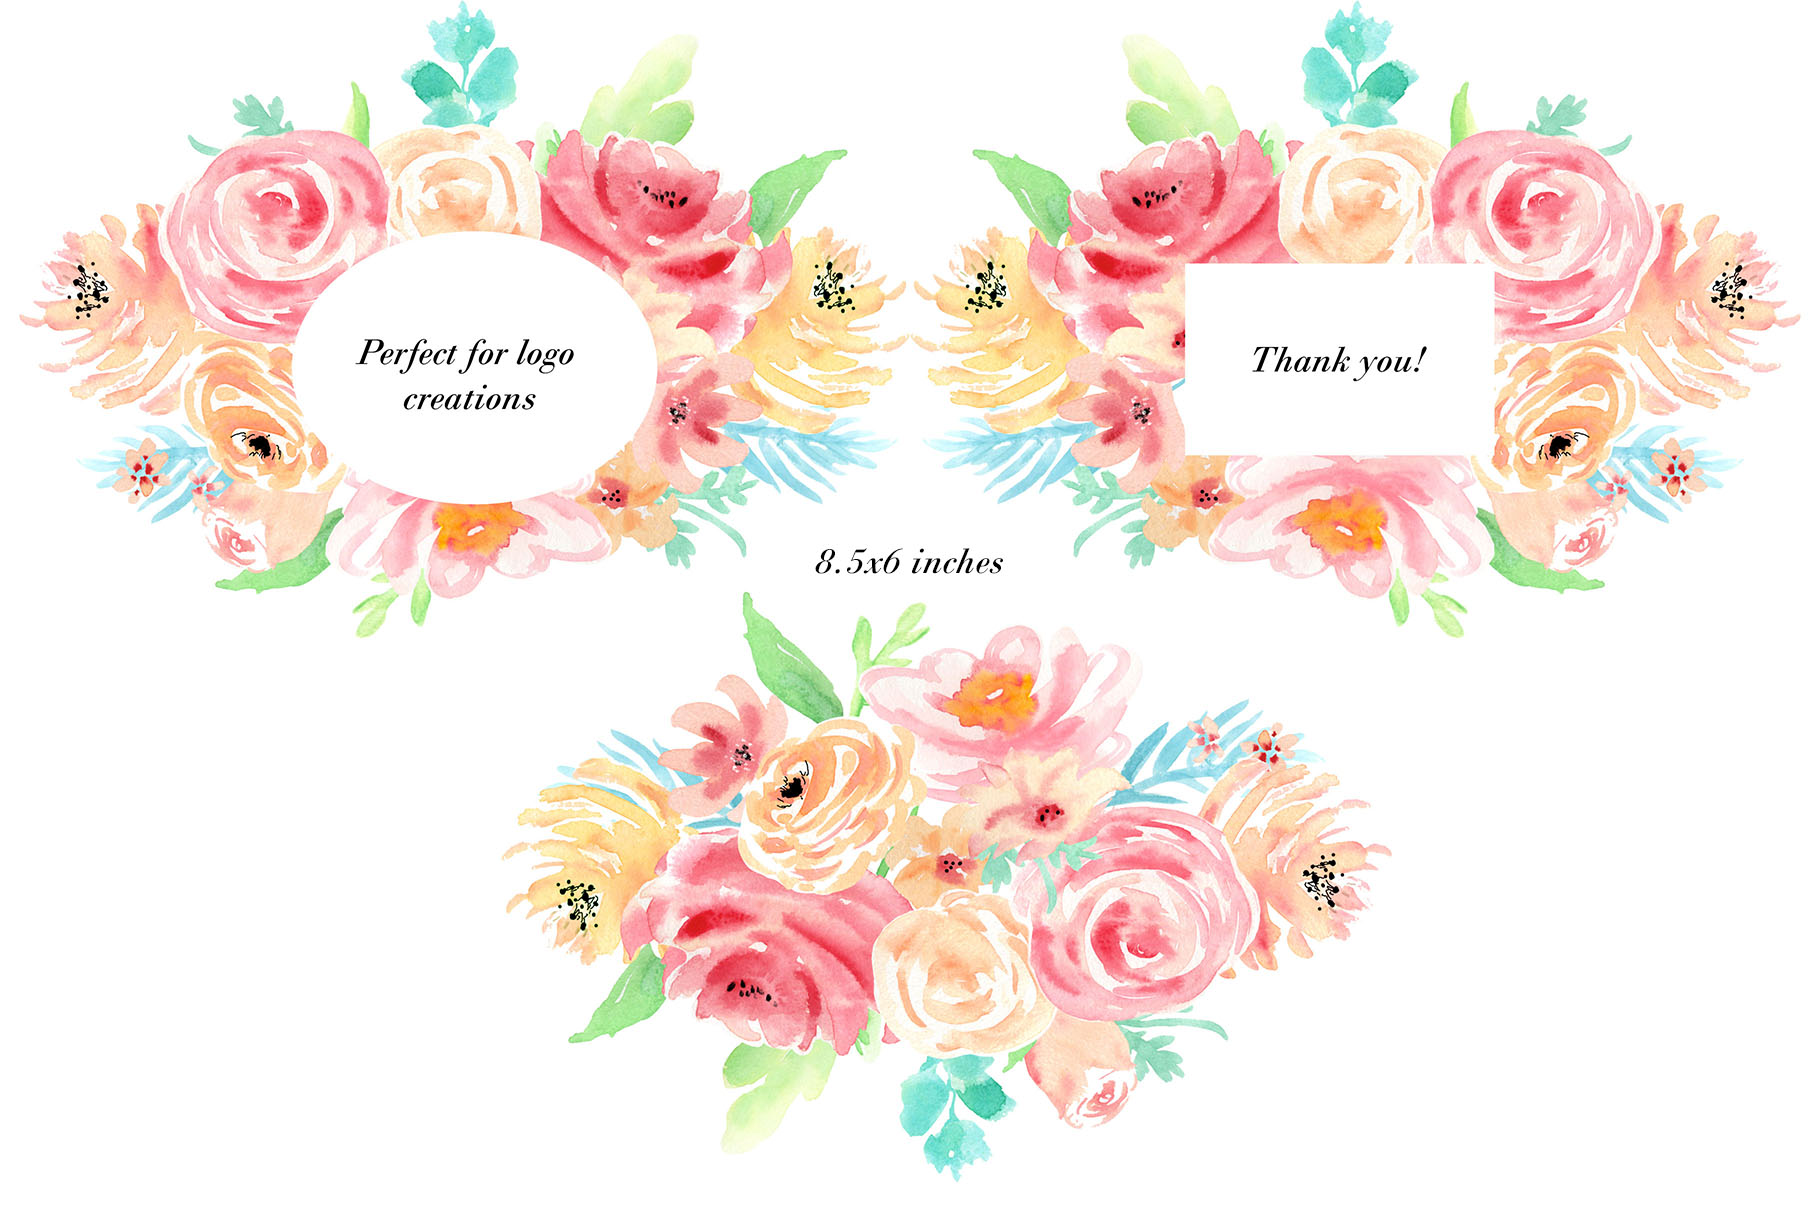 Watercolor flowers clip art. For wedding invitations, scrapbook, thank you card, logo creations. BOHO, Hand painted Watercolor floral example image 3